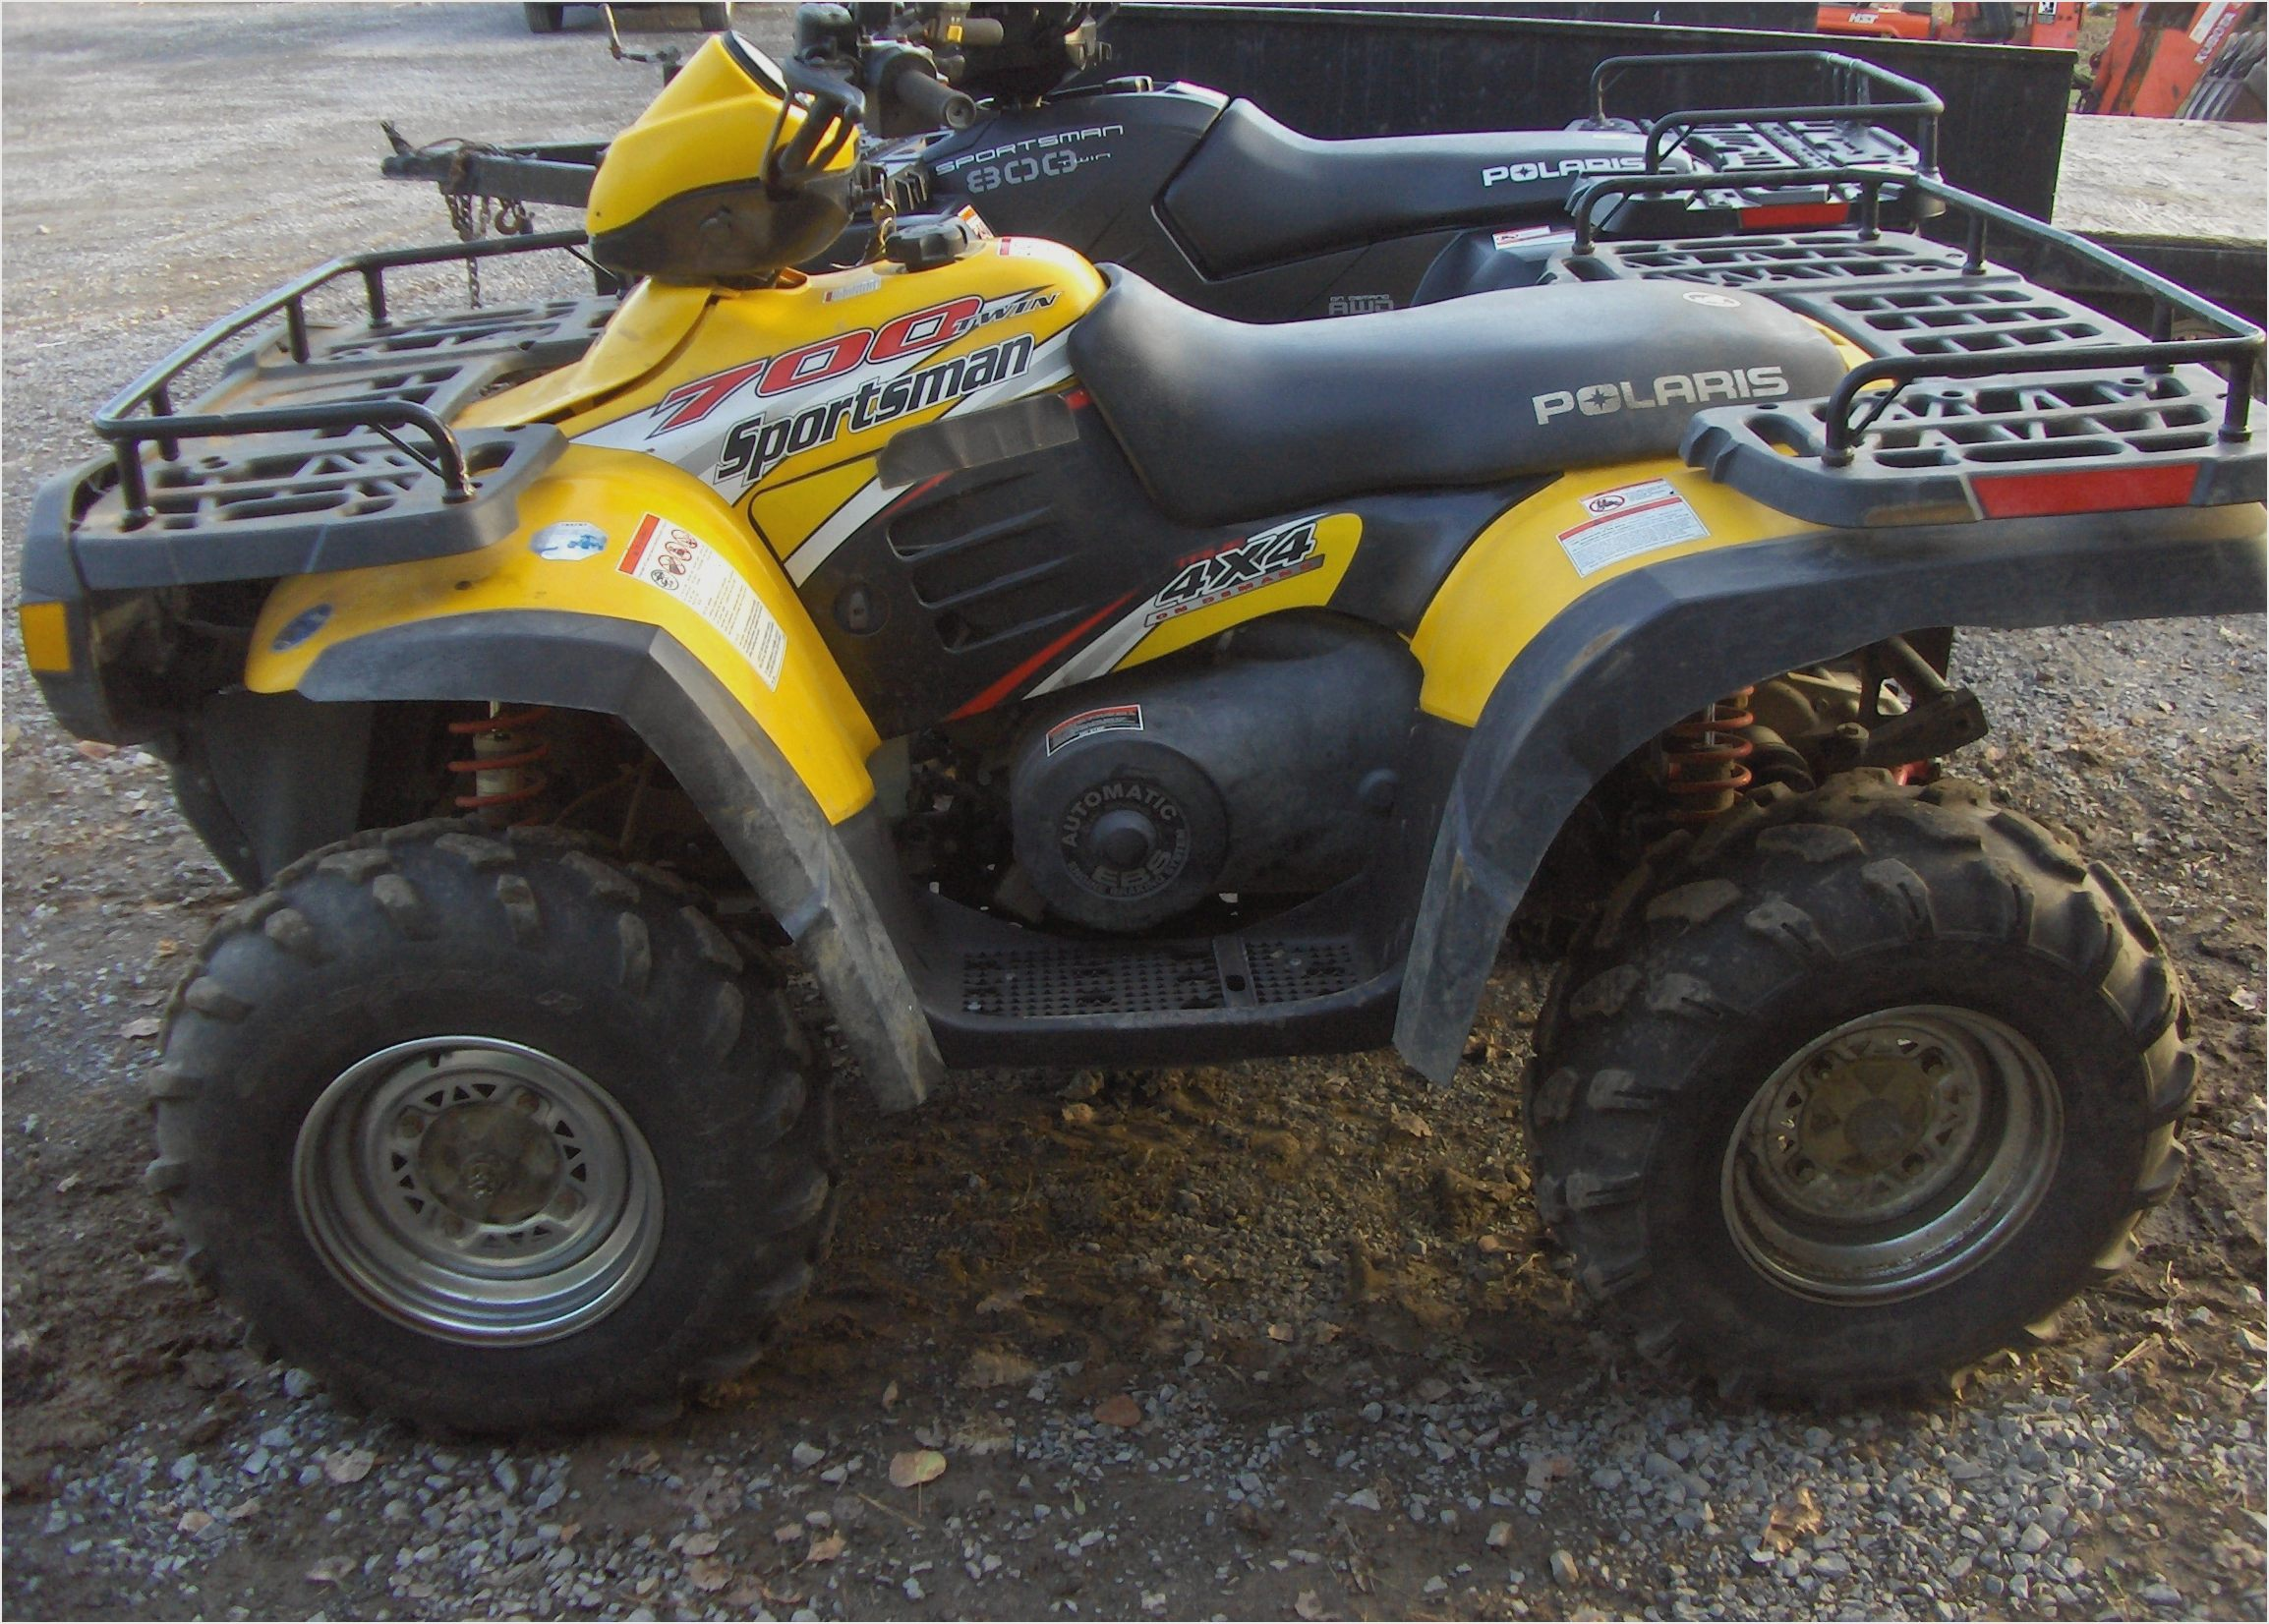 Polaris Sportsman 700 images #169618